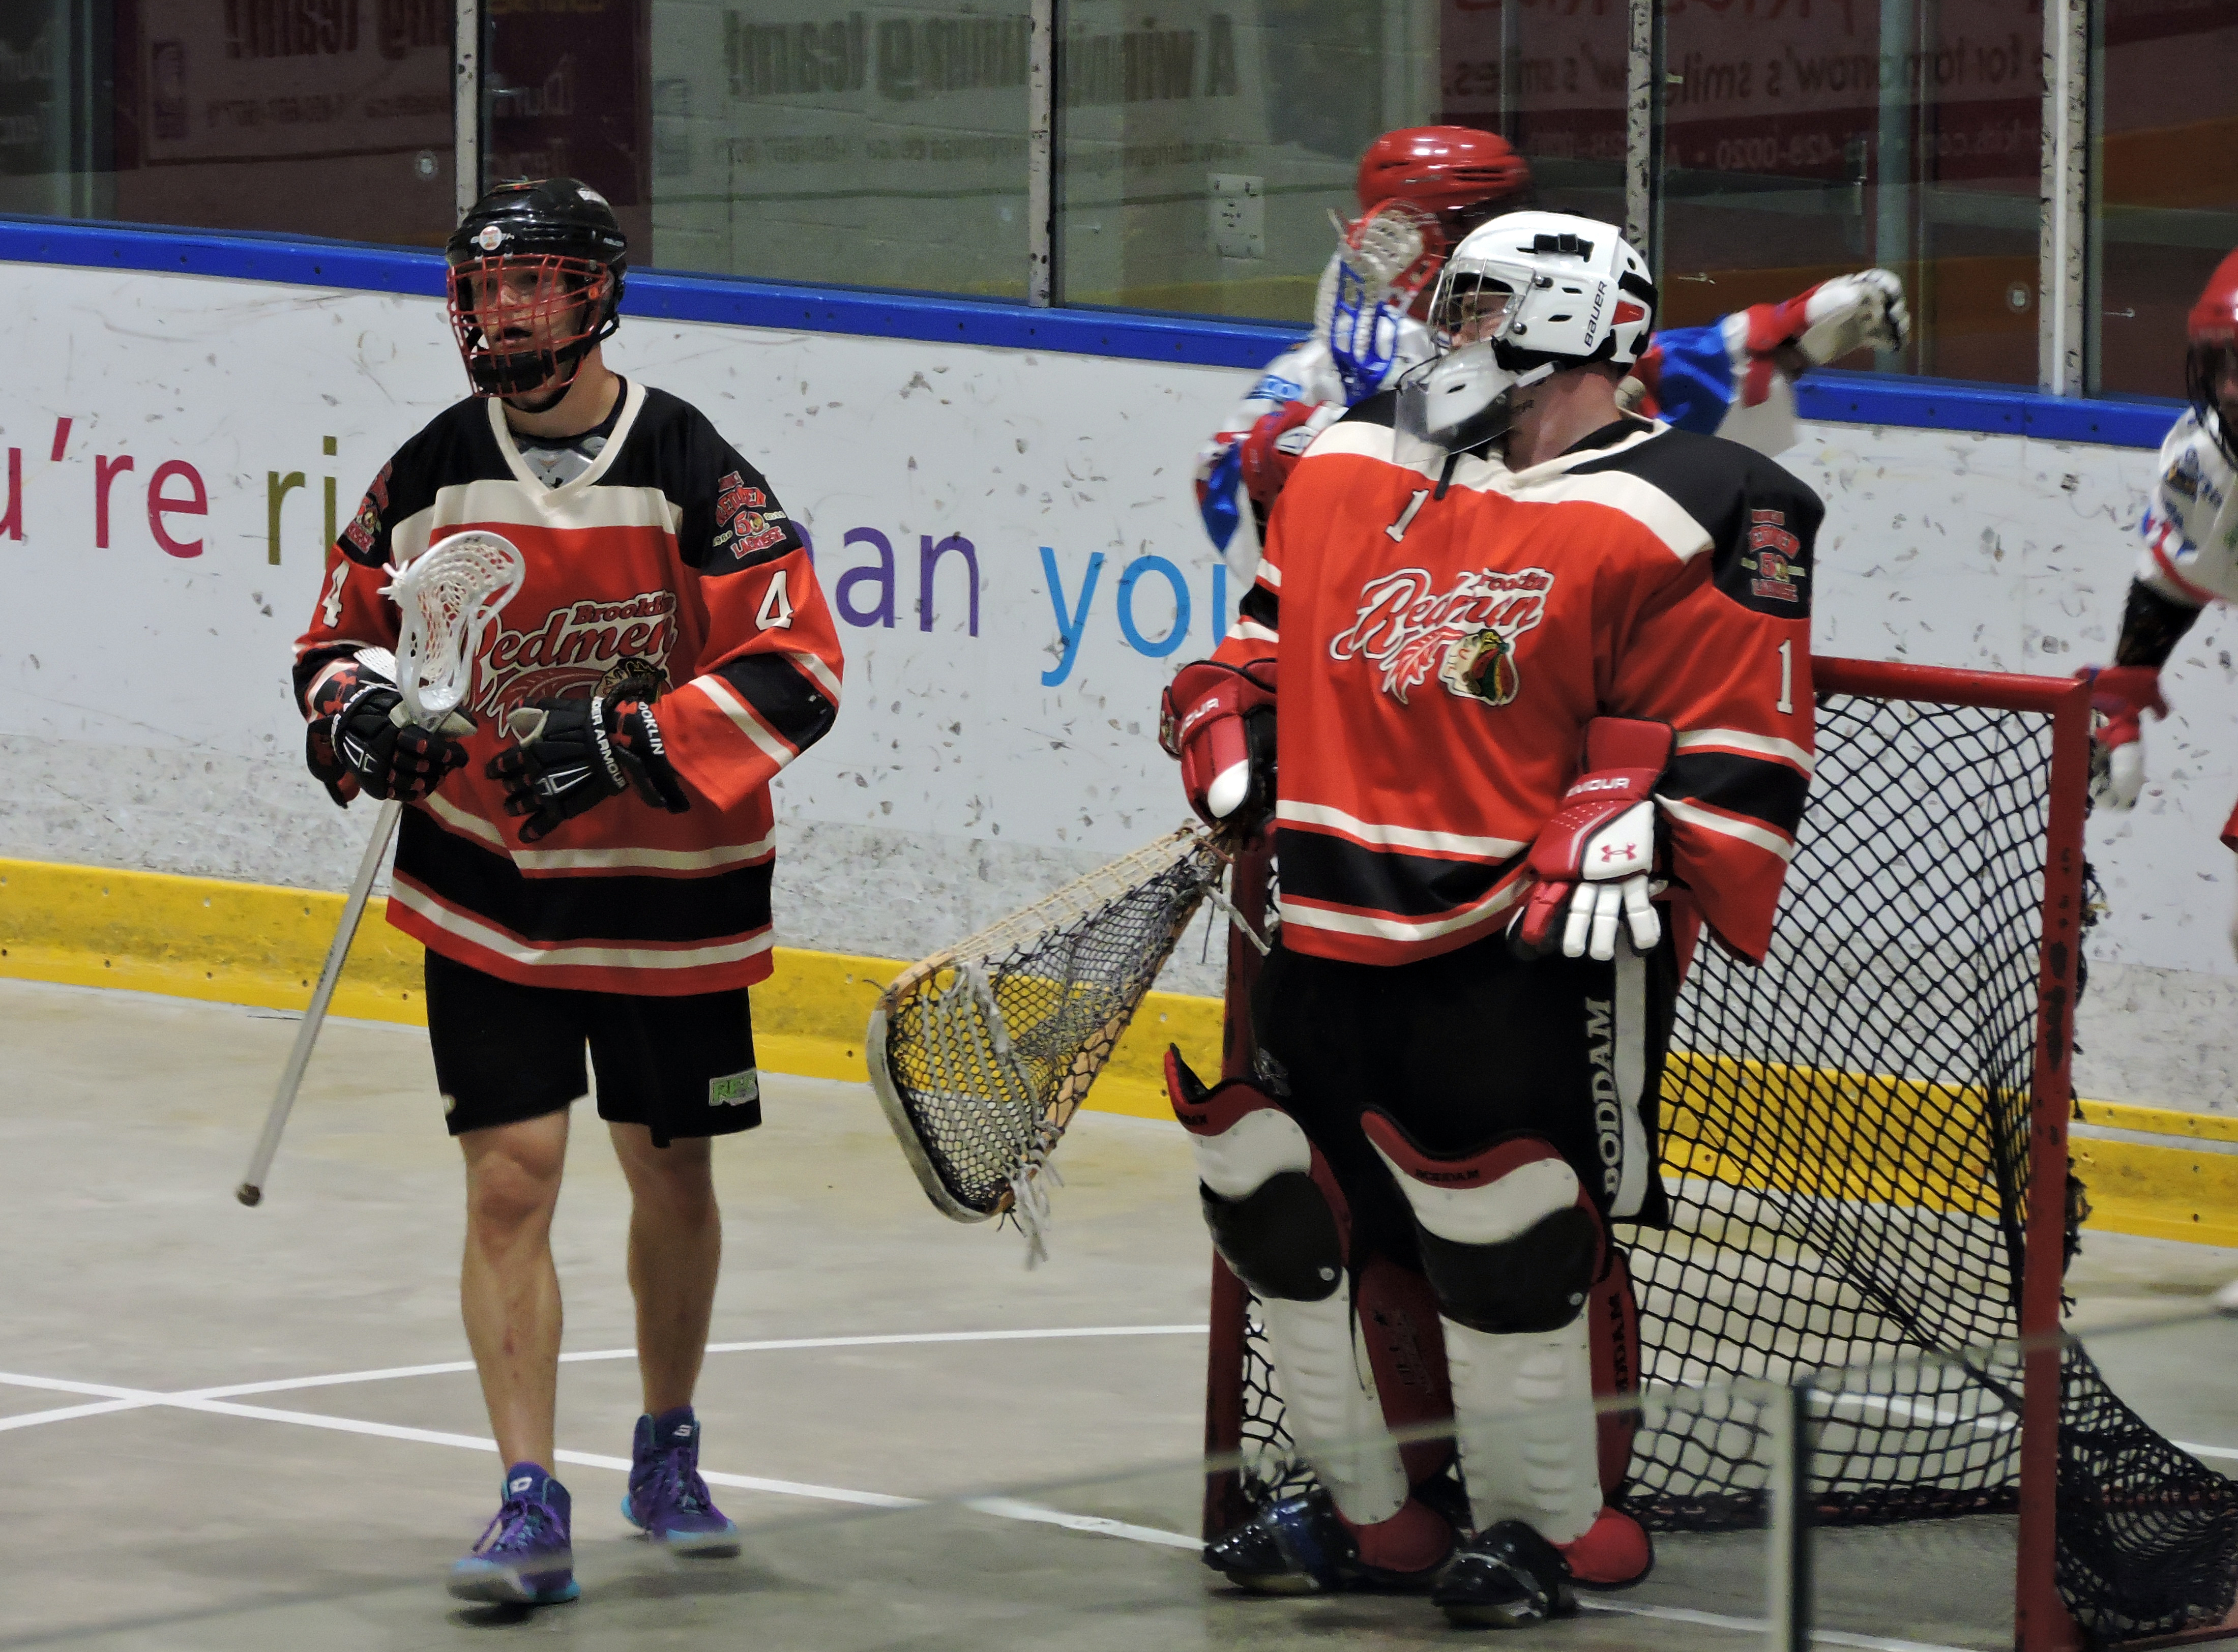 The Brooklin Redmen react to a goal scored by the Peterborough Lakers. (Photo credit: Anna Taylor)